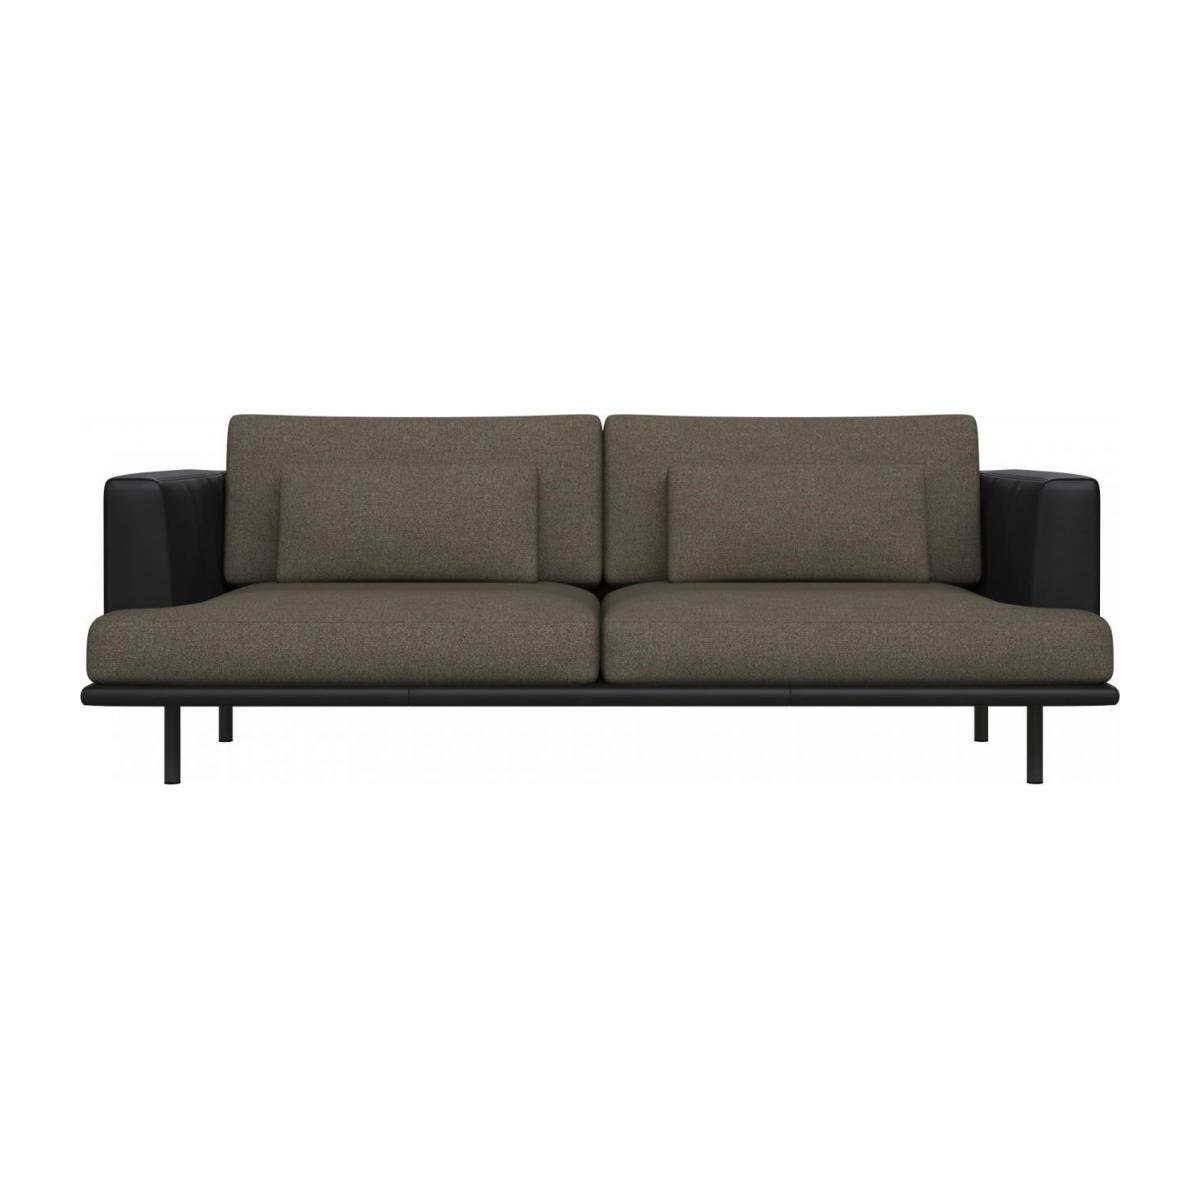 3 seater sofa in Lecce fabric, slade grey with base and armrests in black leather n°2